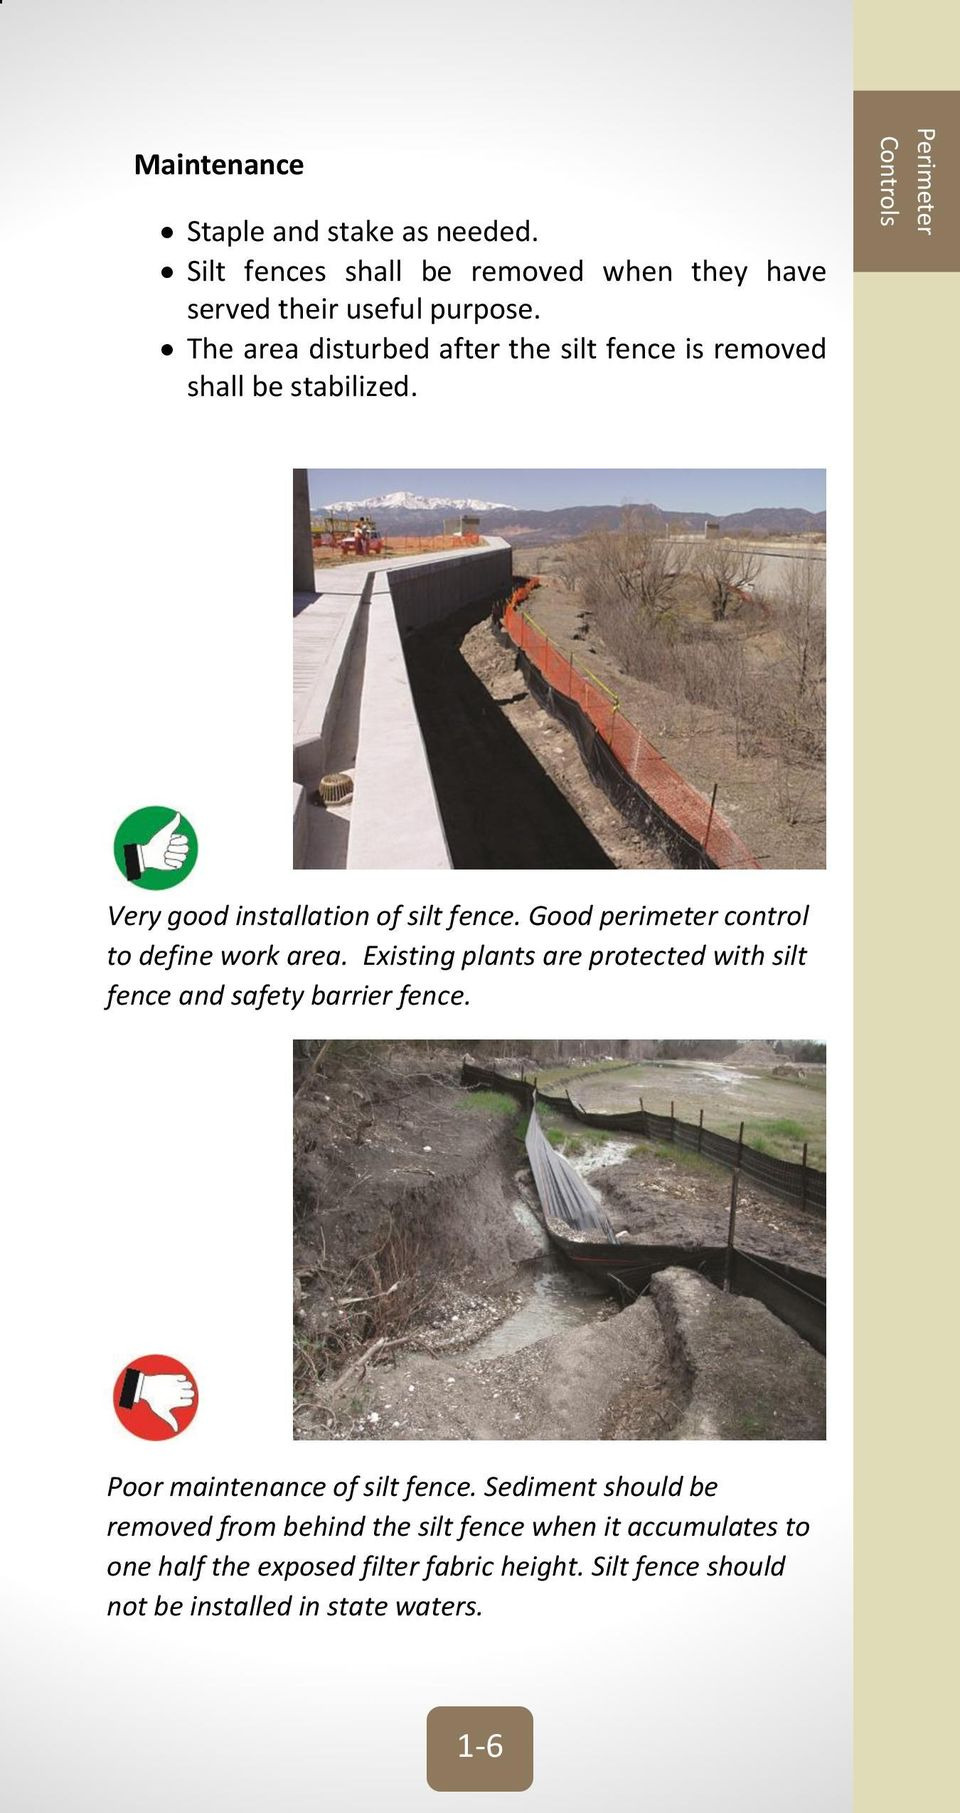 Good perimeter control to define work area. Existing plants are protected with silt fence and safety barrier fence.